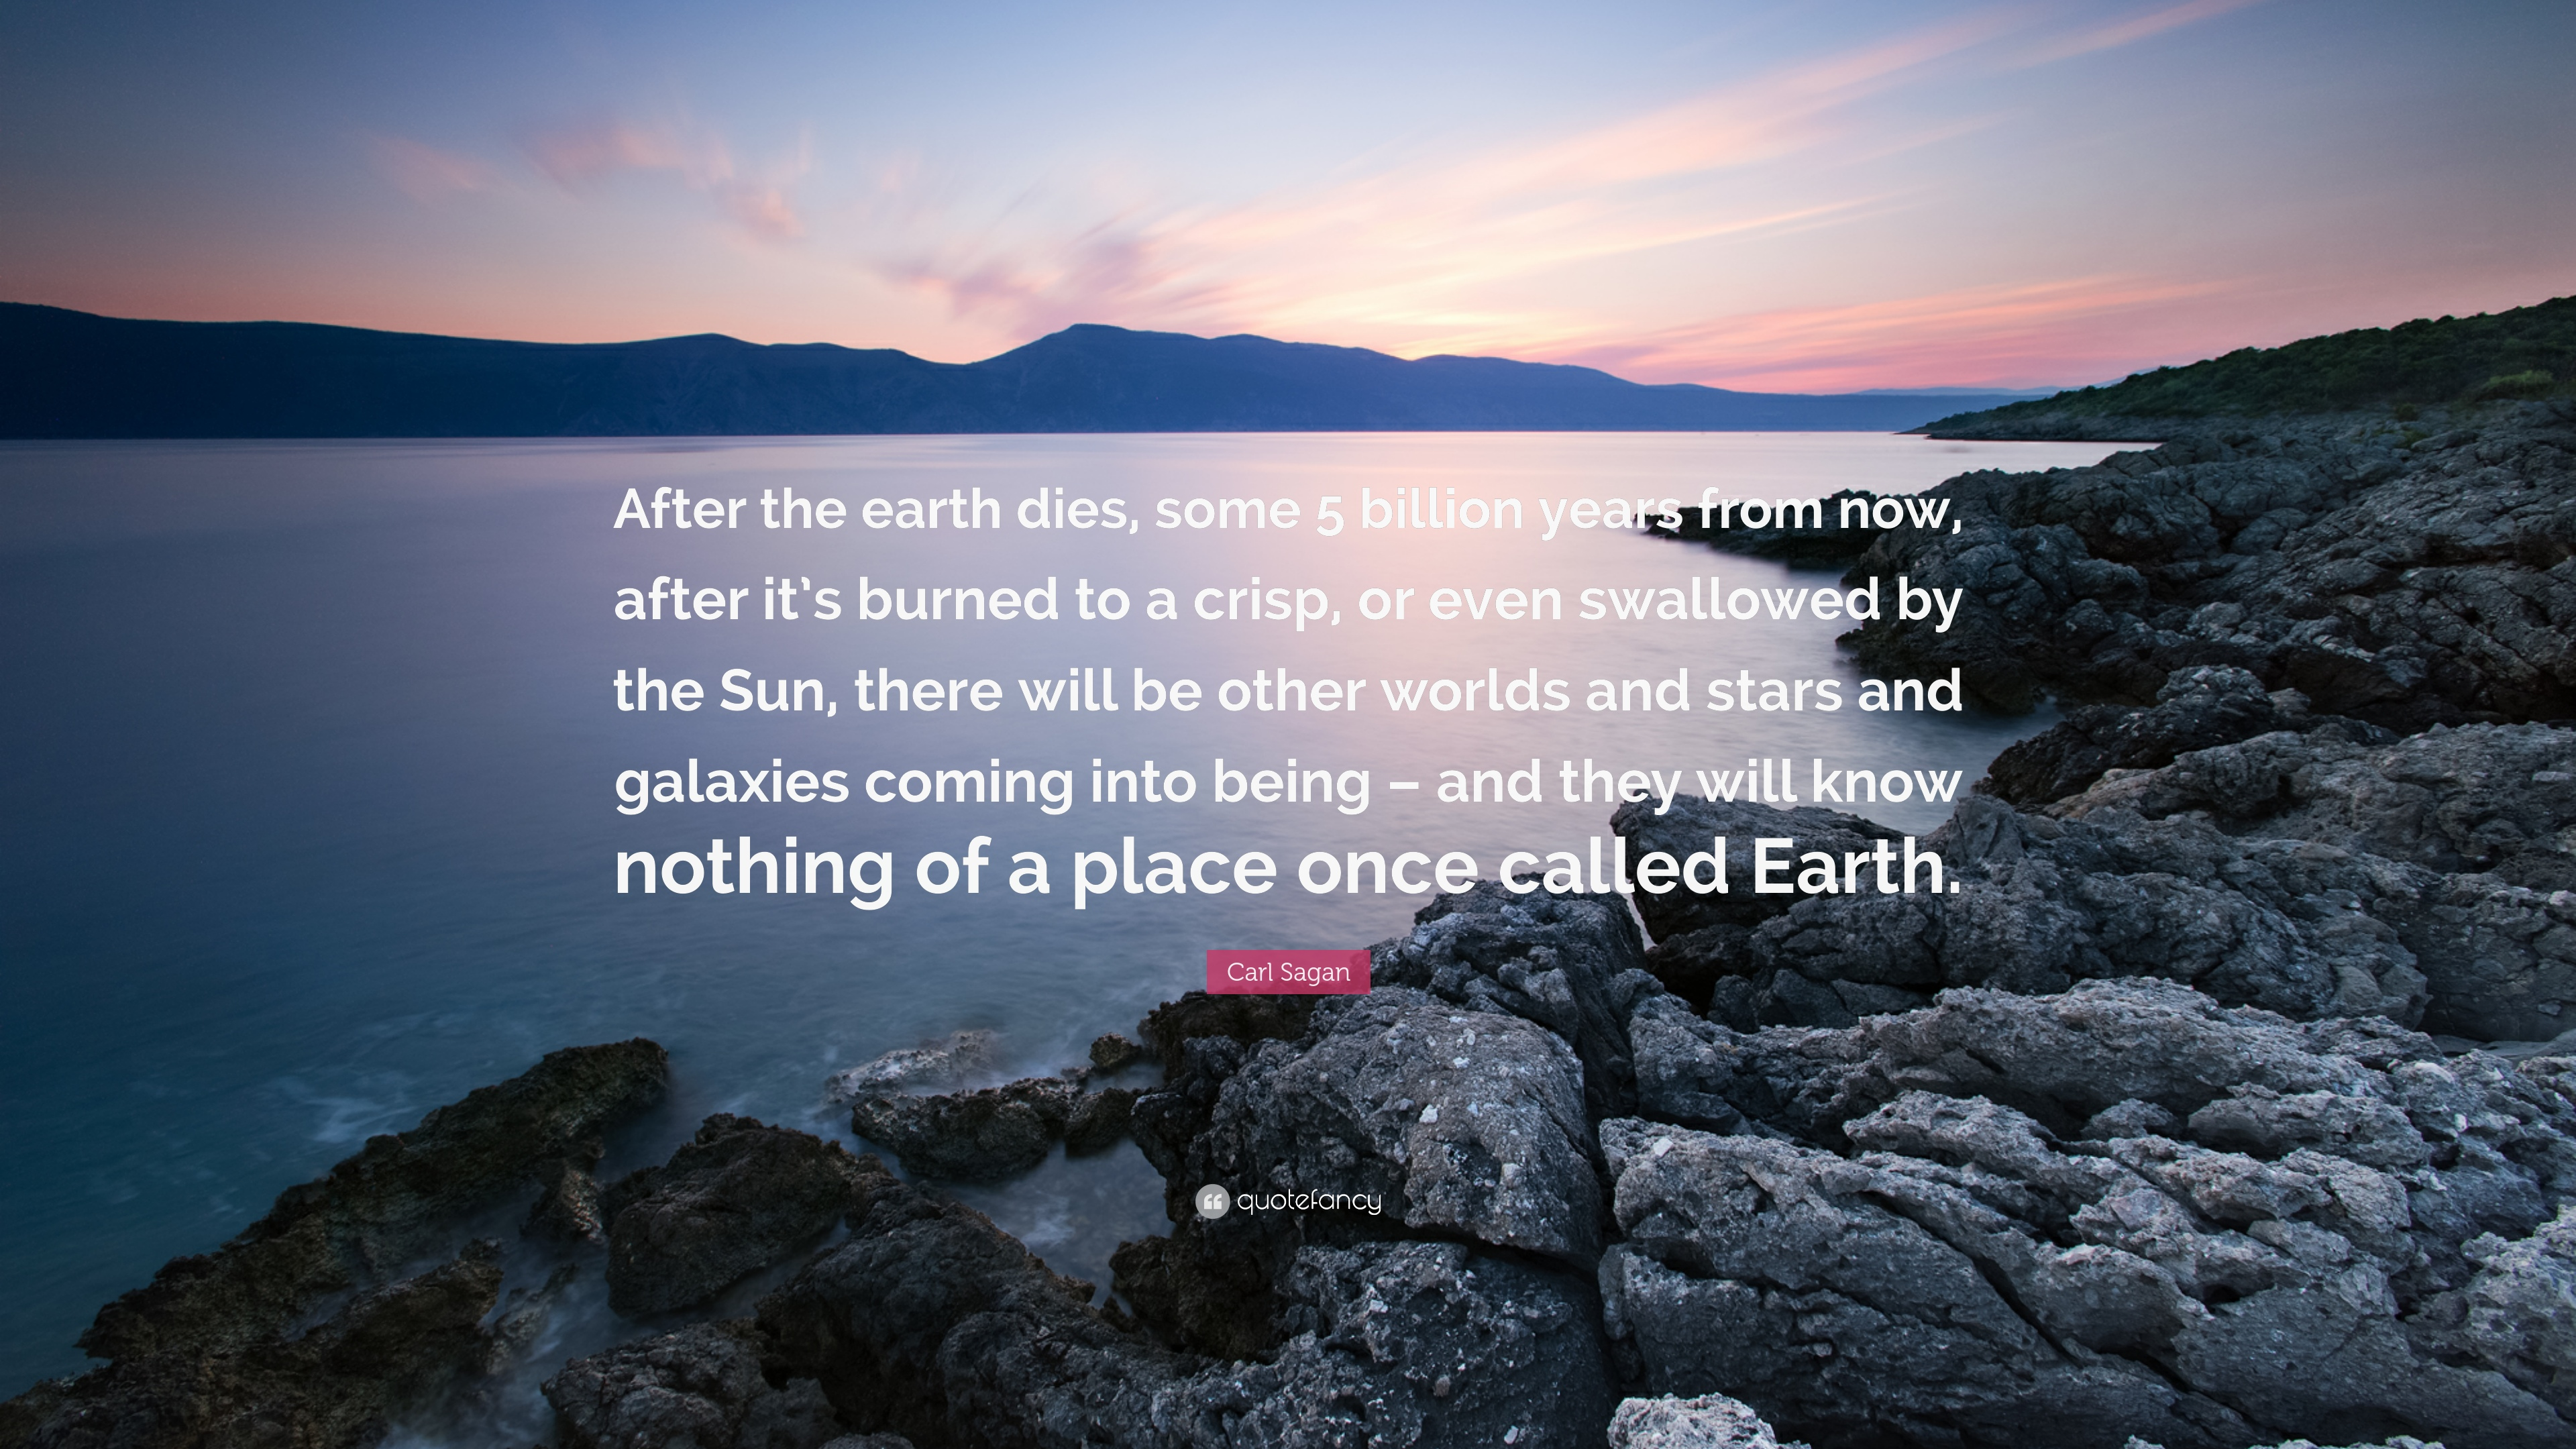 carl sagan quote after the earth dies some billion years from carl sagan quote after the earth dies some 5 billion years from now